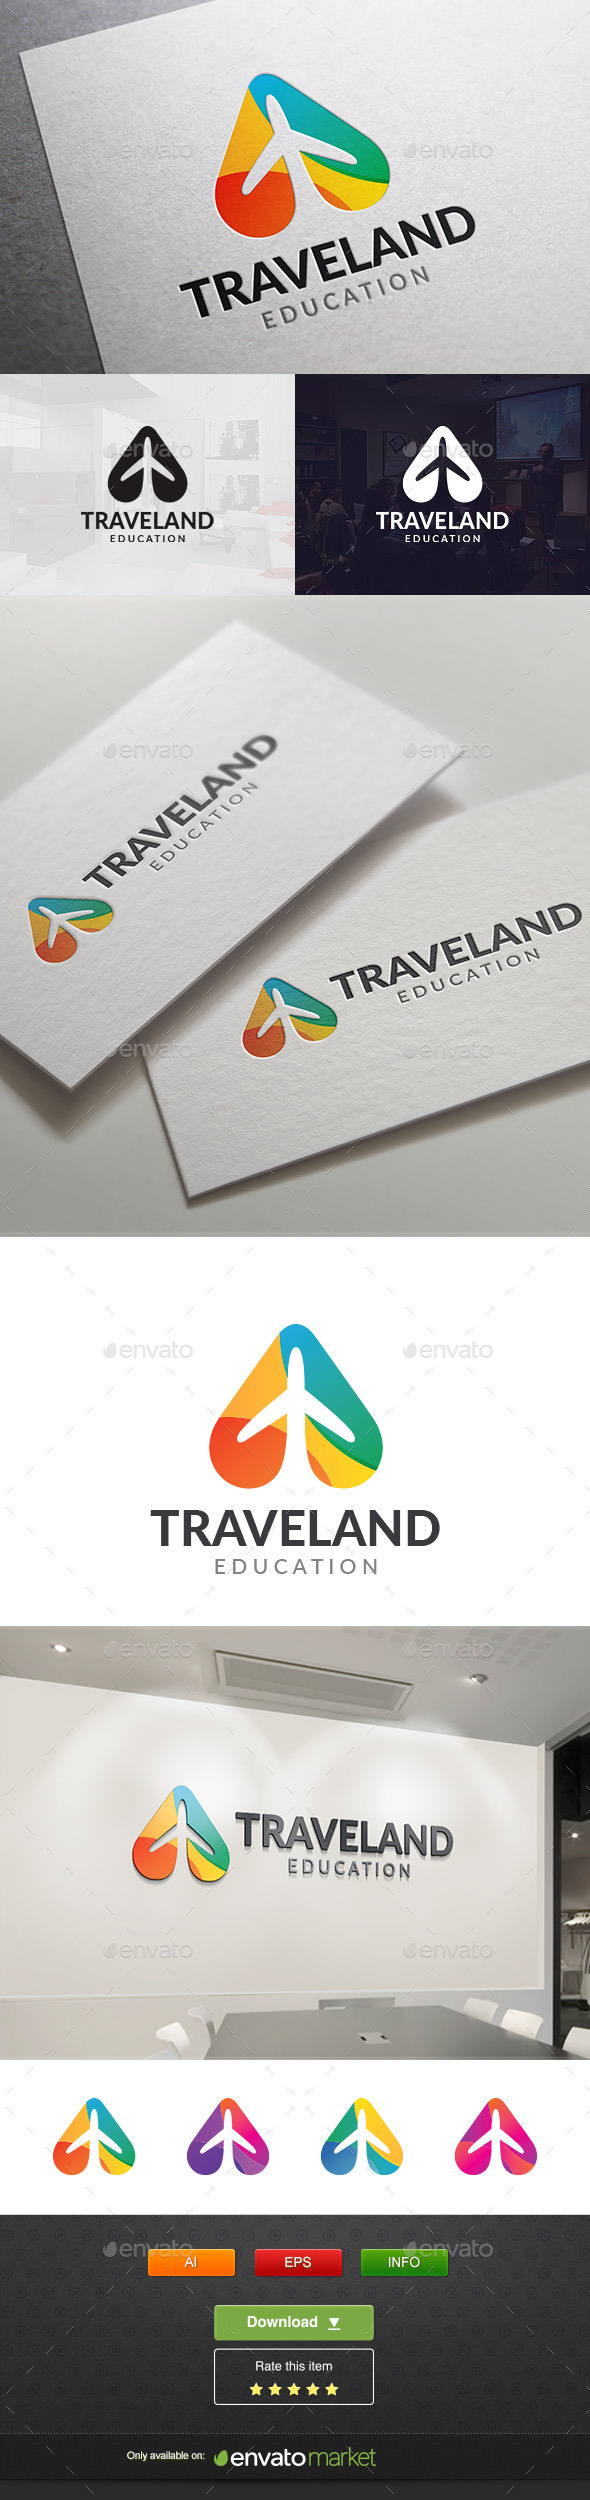 GraphicRiver Travel Land 11765450